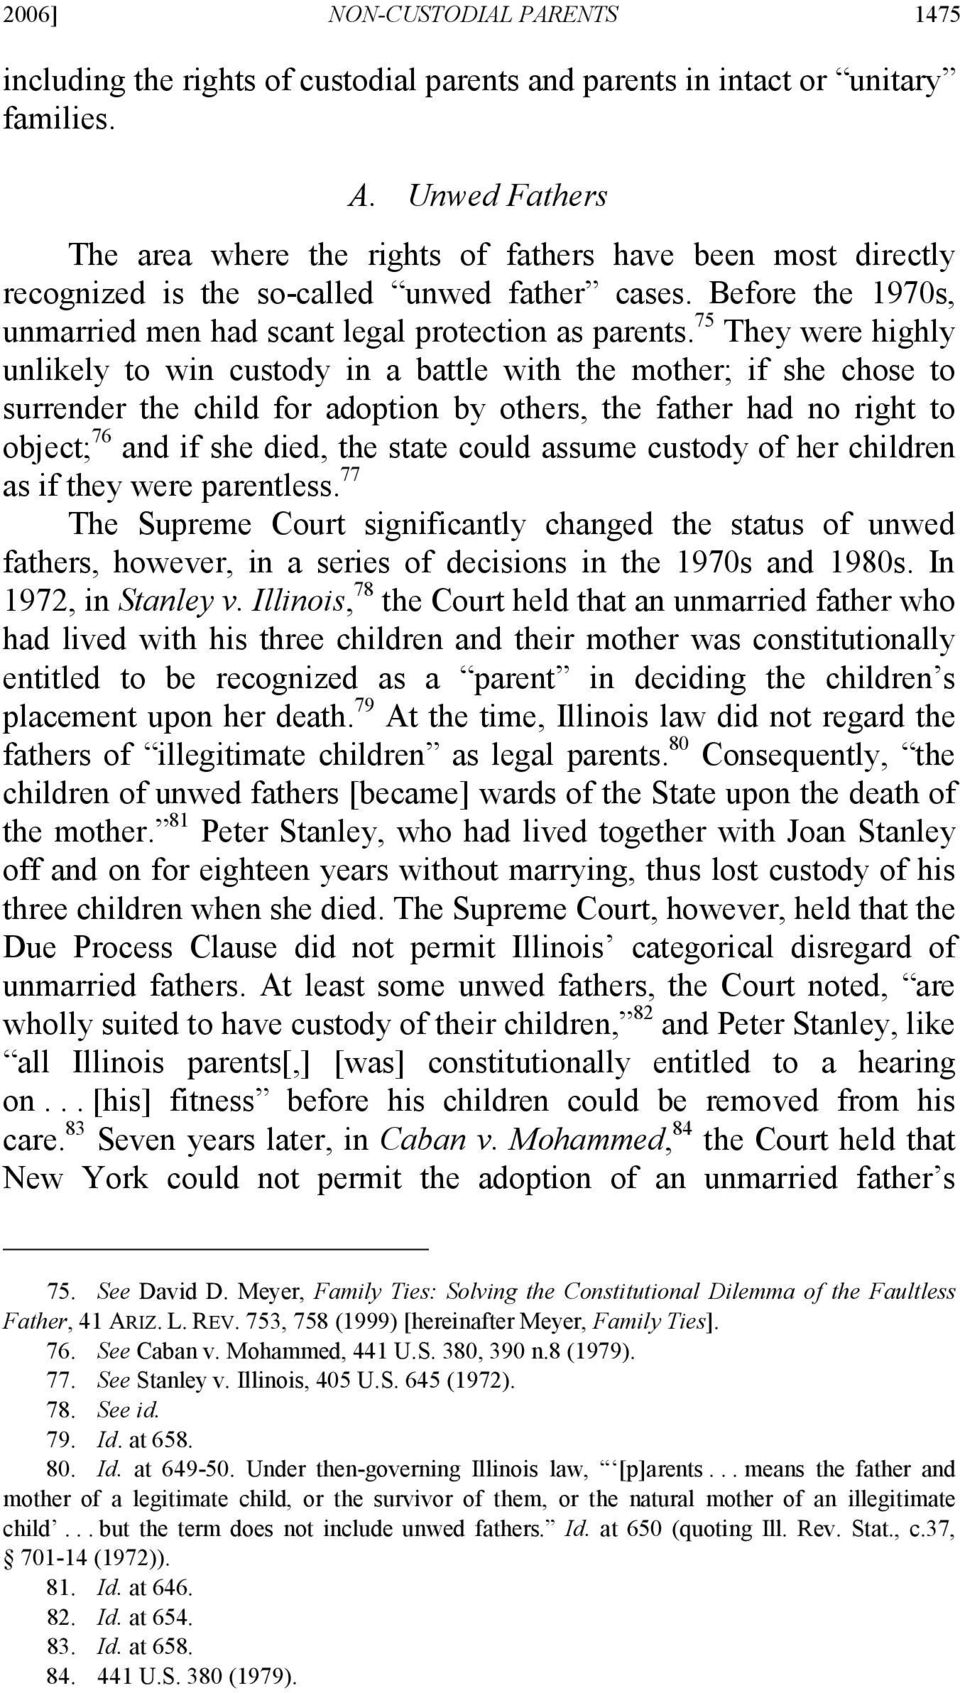 75 They were highly unlikely to win custody in a battle with the mother; if she chose to surrender the child for adoption by others, the father had no right to object; 76 and if she died, the state